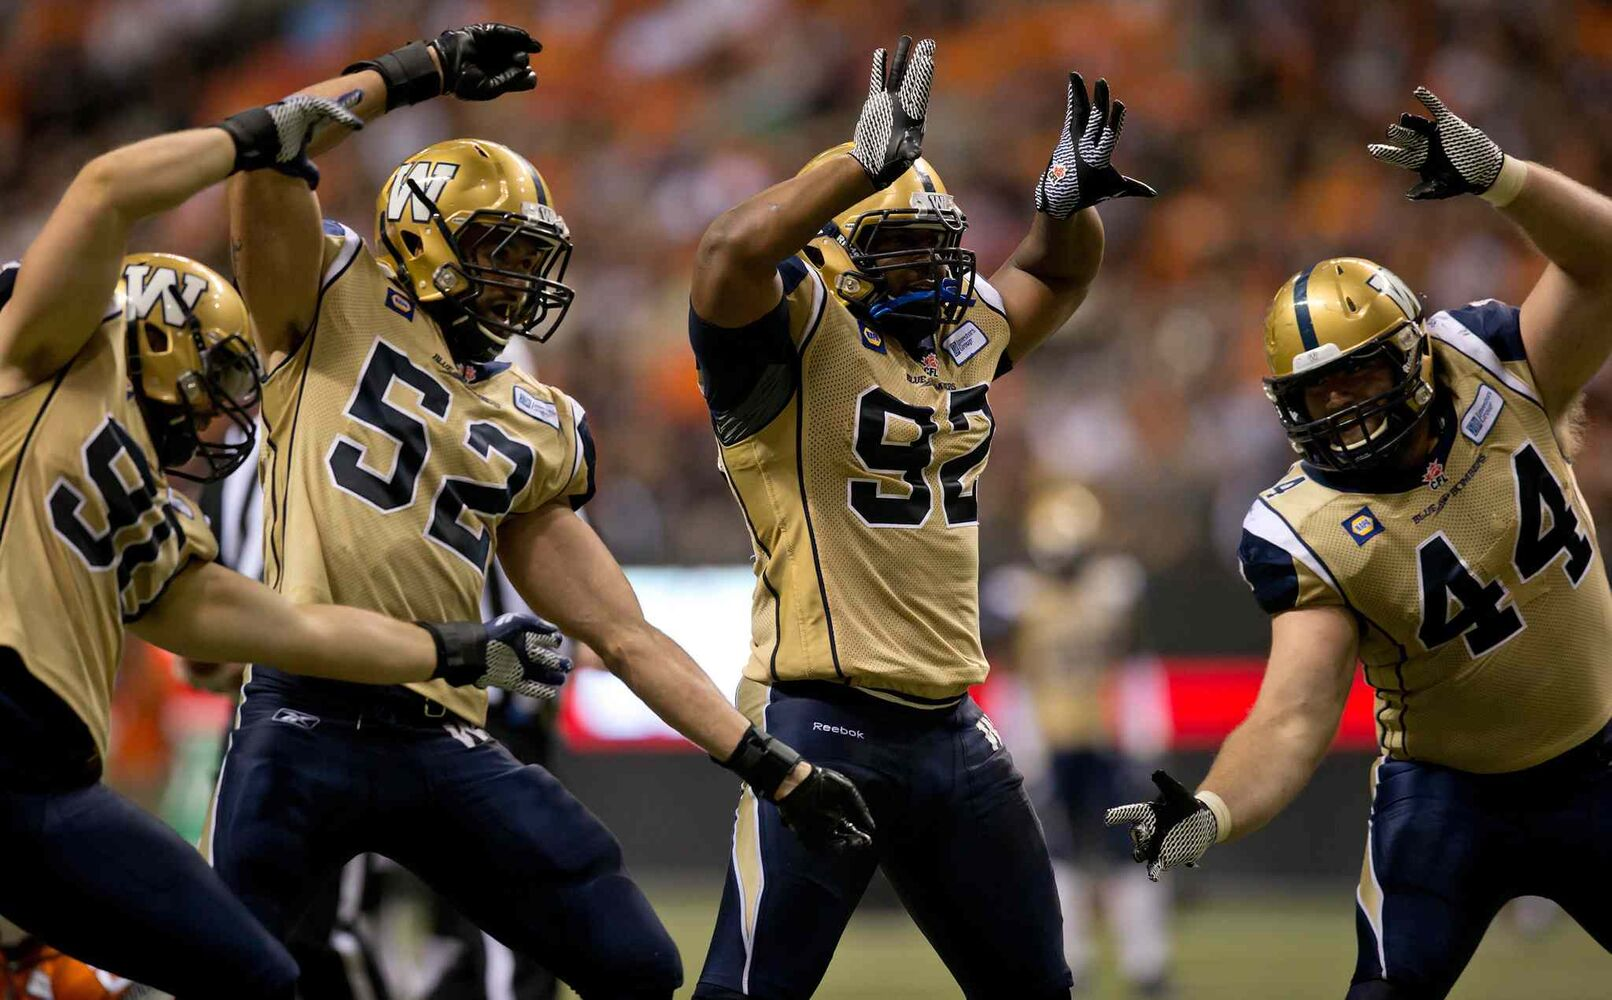 From left, Winnipeg Blue Bombers' Greg Peach, Louie Richardson, Bryant Turner Jr. and Zach Anderson celebrate after Turner sacked B.C. Lions' quarterback Kevin Glenn during the second half of Friday's game. (DARRYL DYCK / The Canadian Press)